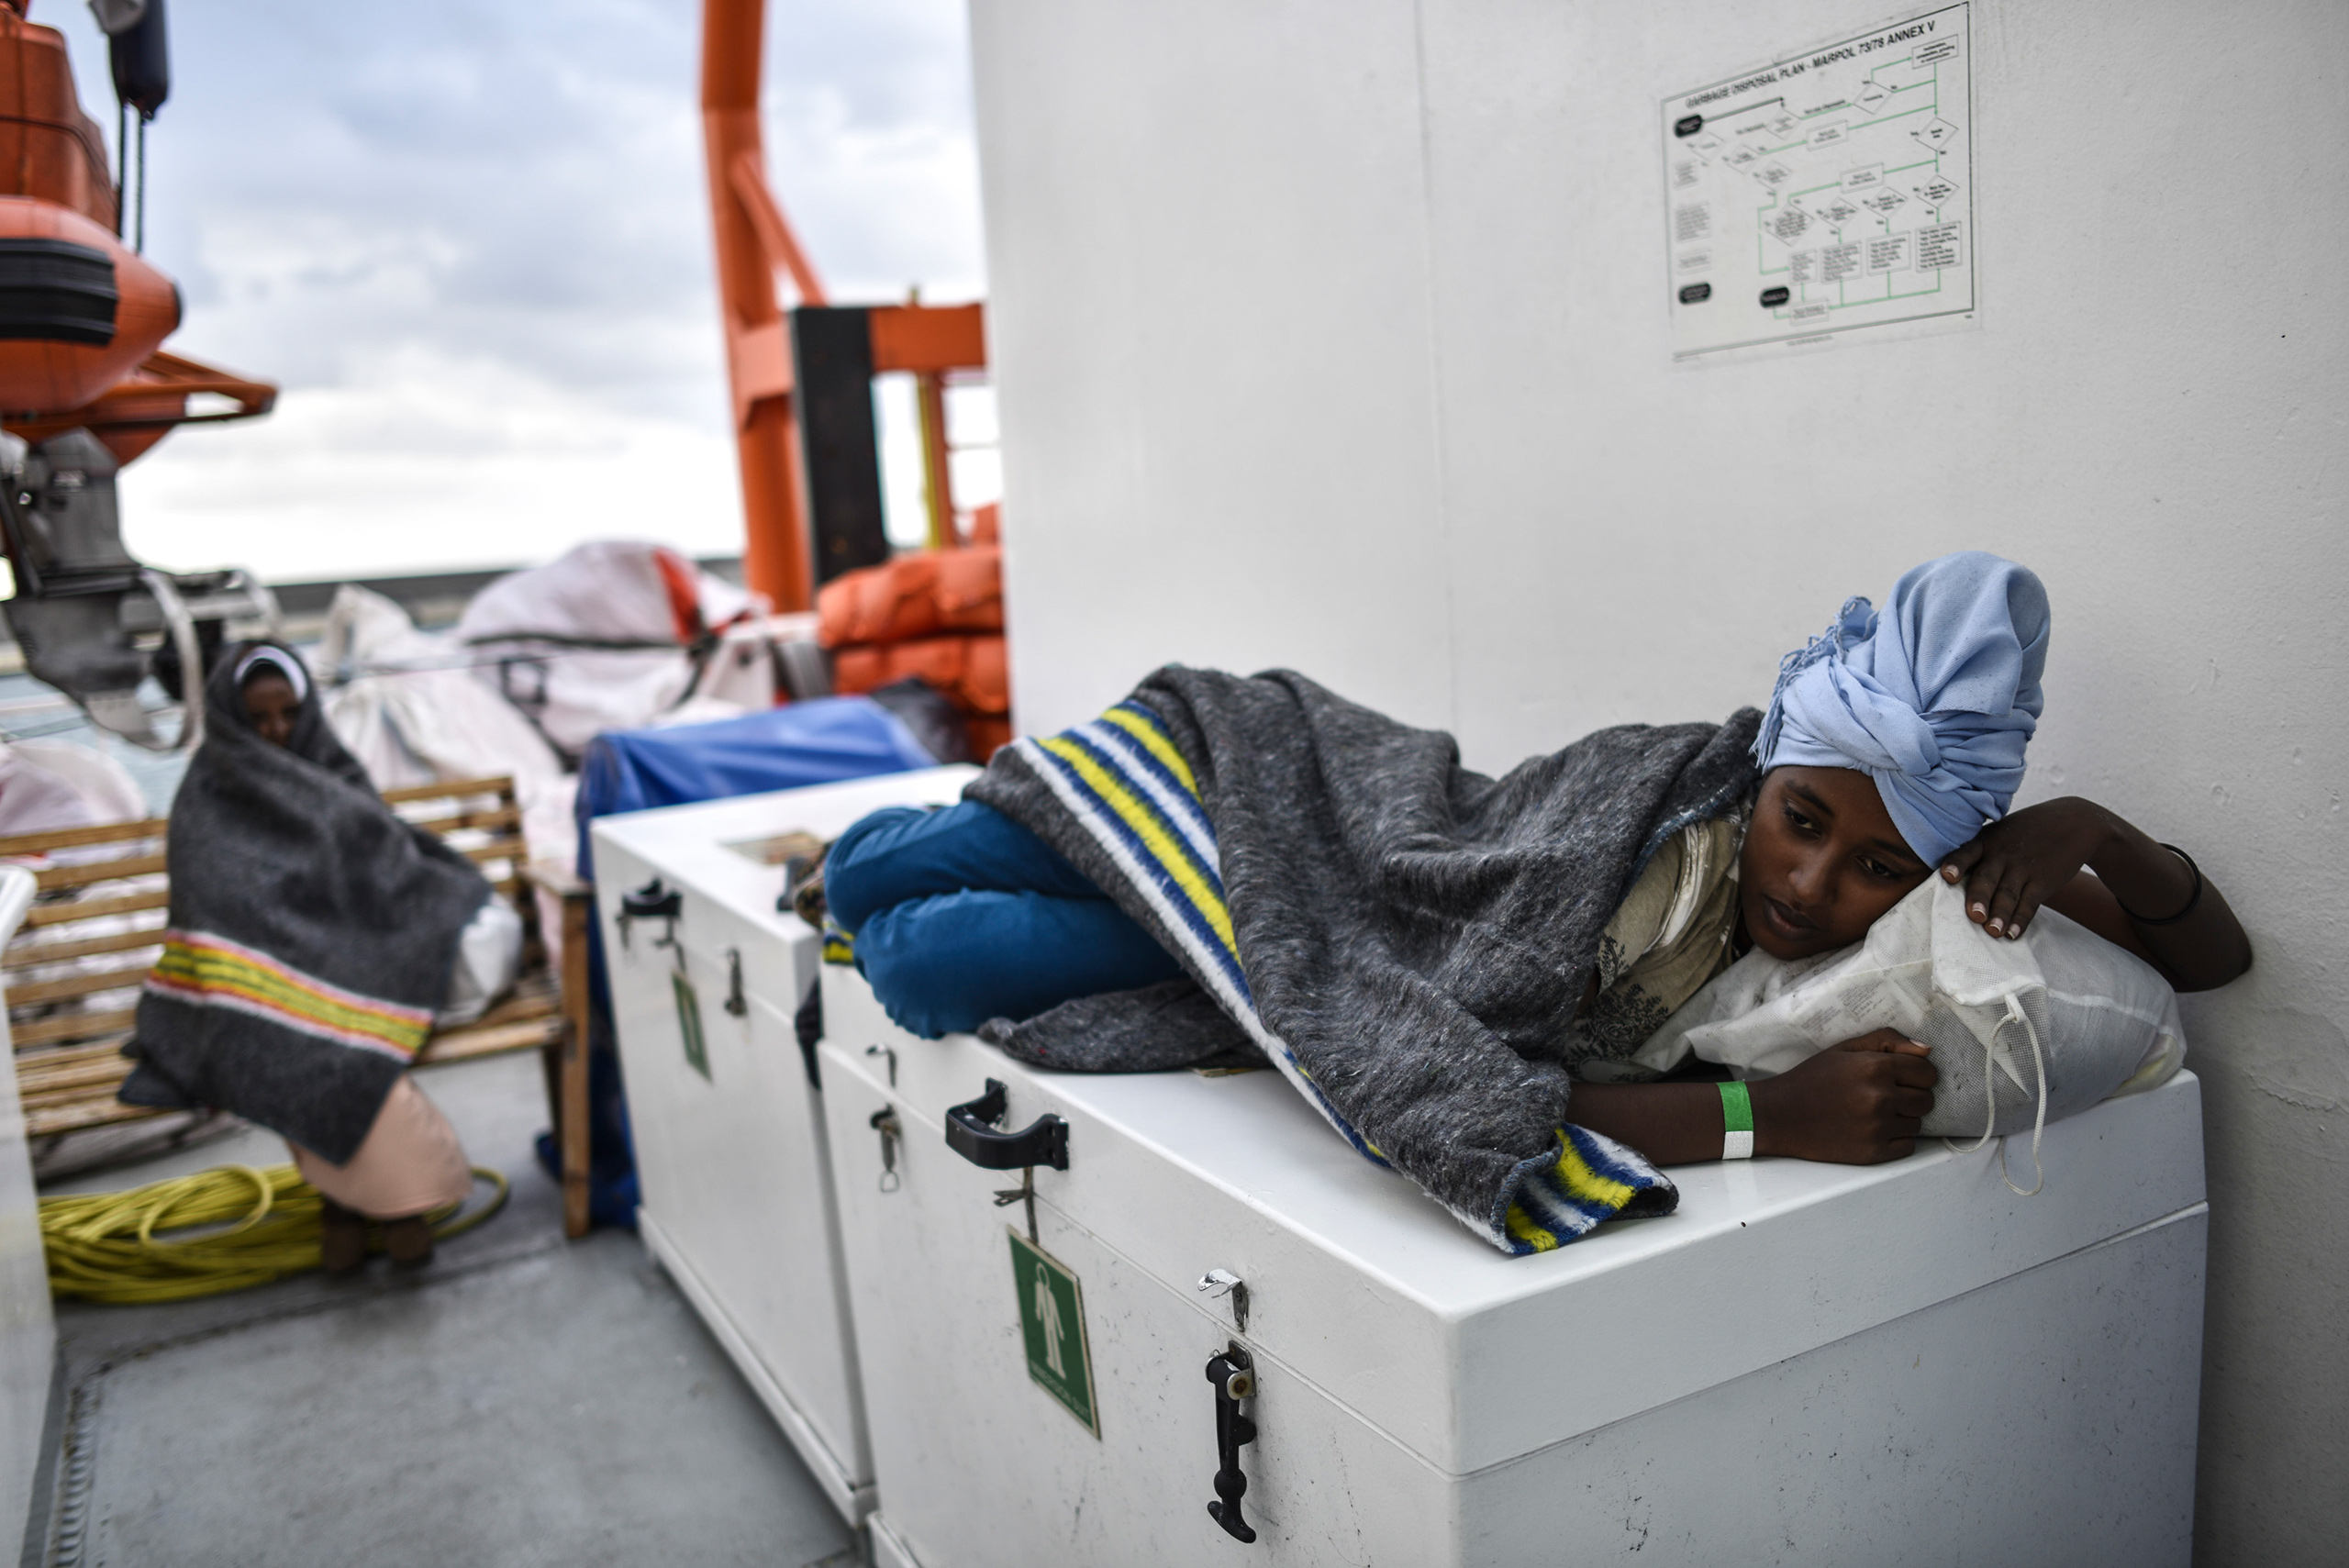 A young migrant woman rests on the deck as the ship sails to Italy, Aug. 23, 2016.